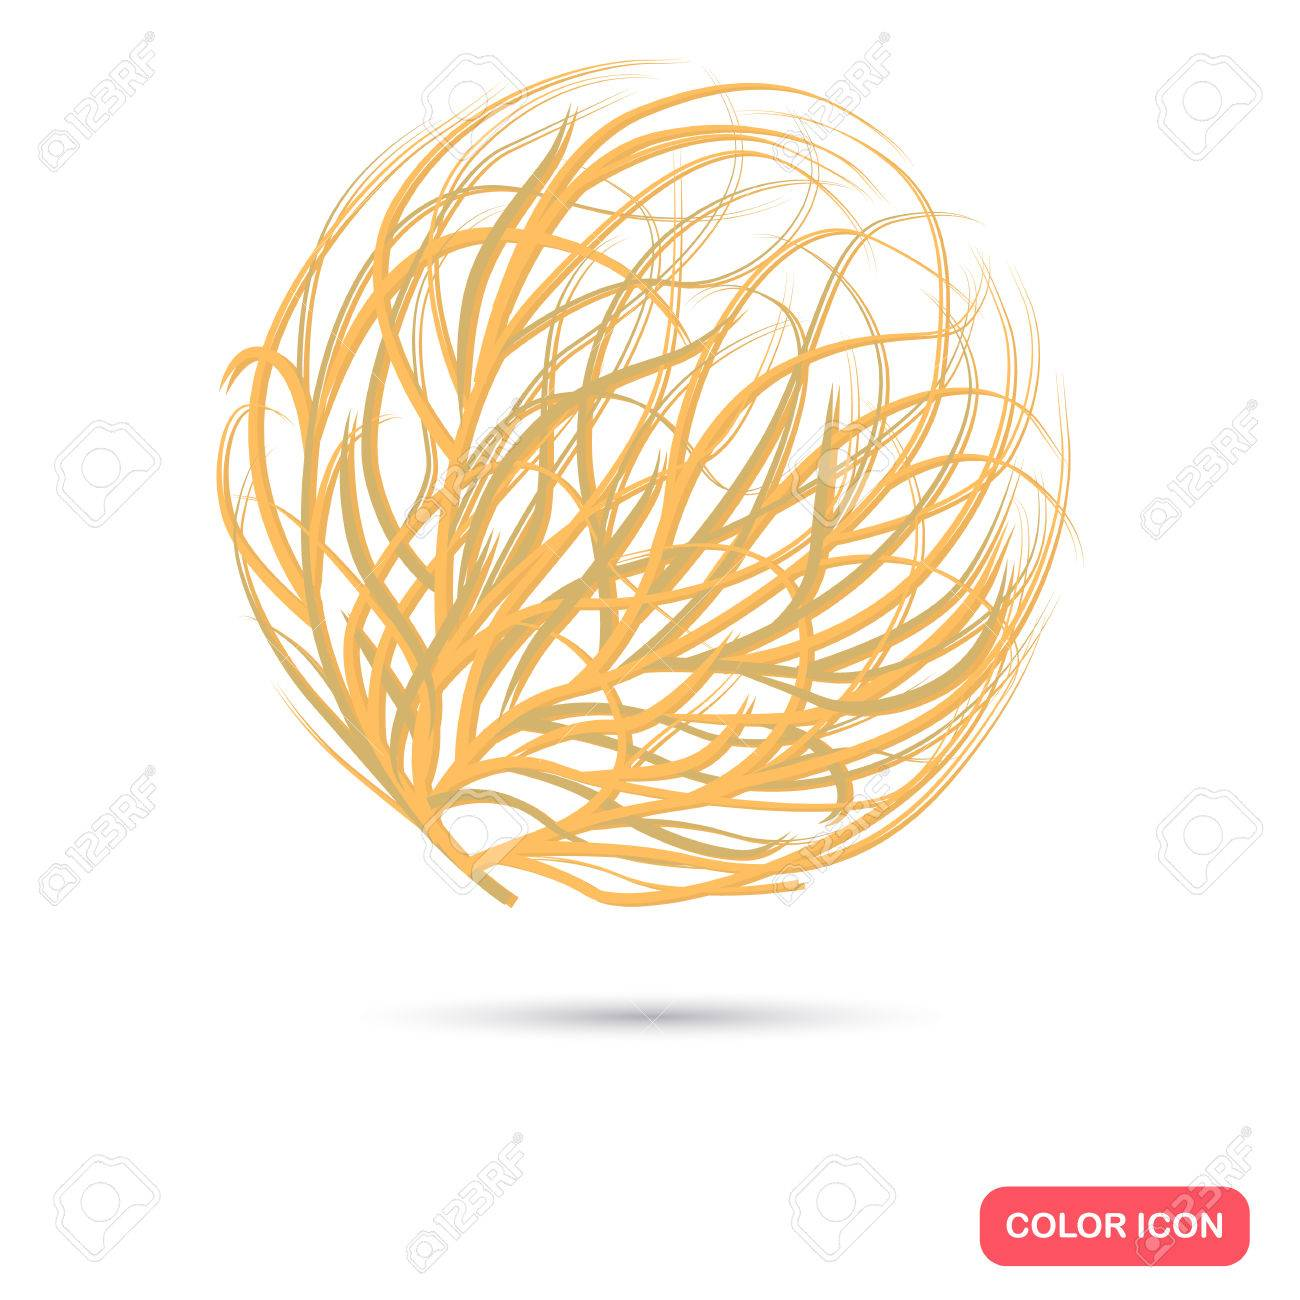 tumbleweed color flat icon for web and mobile design royalty free rh 123rf com Tumbleweeds Cartoon Characters Rolling Tumbleweed